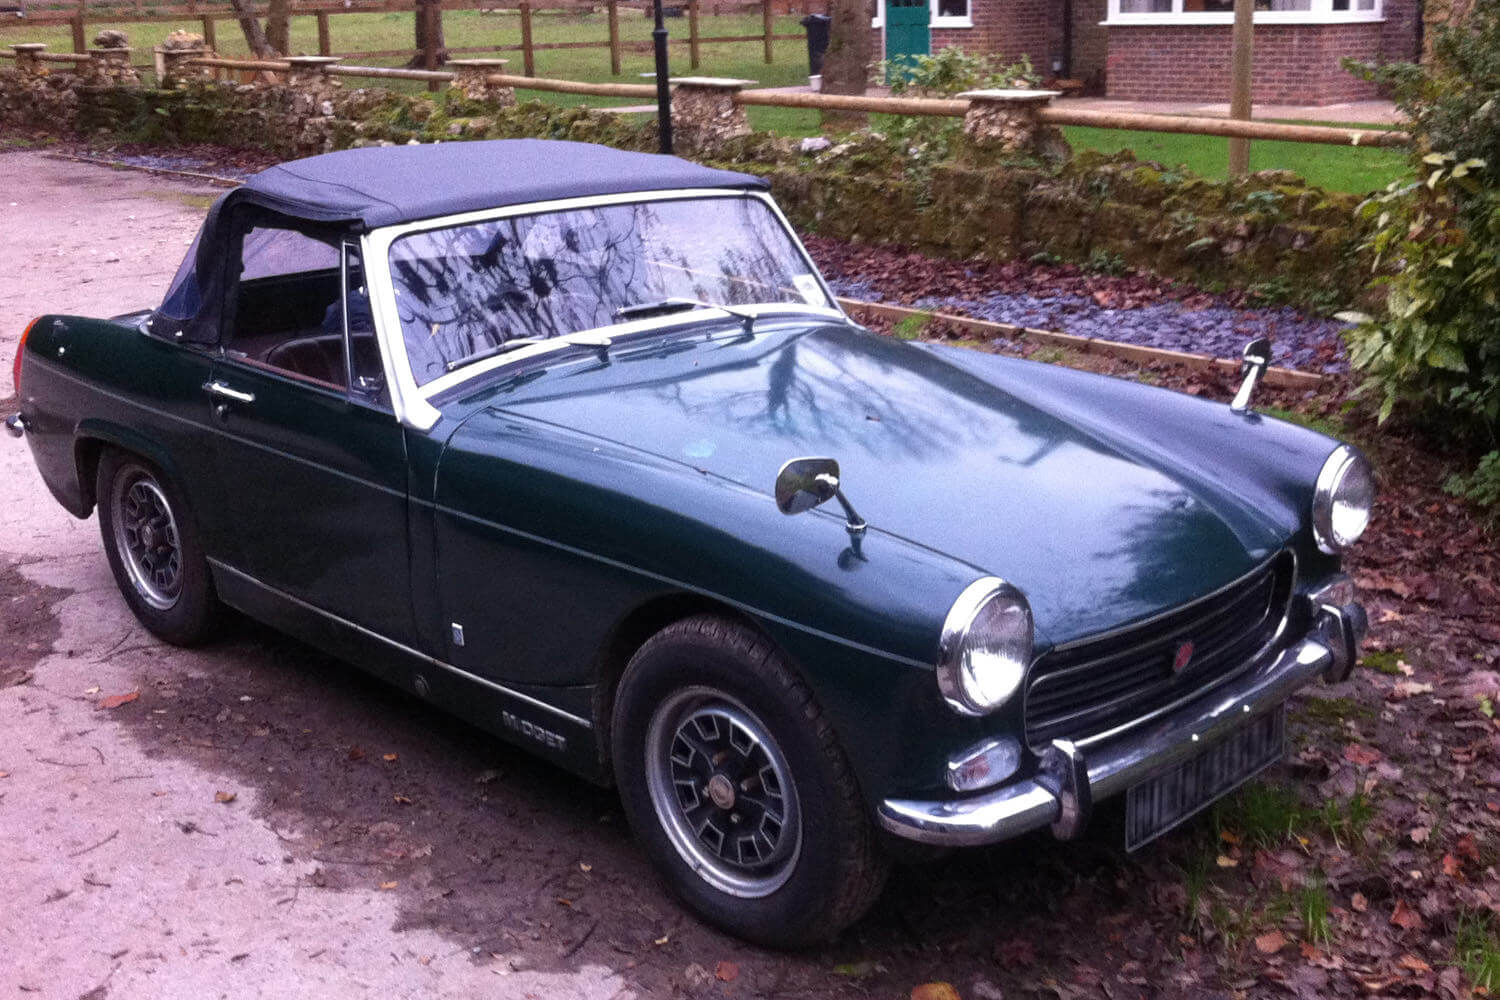 The MG Midget donated by Maurice's best friend, to raise money for Perennial